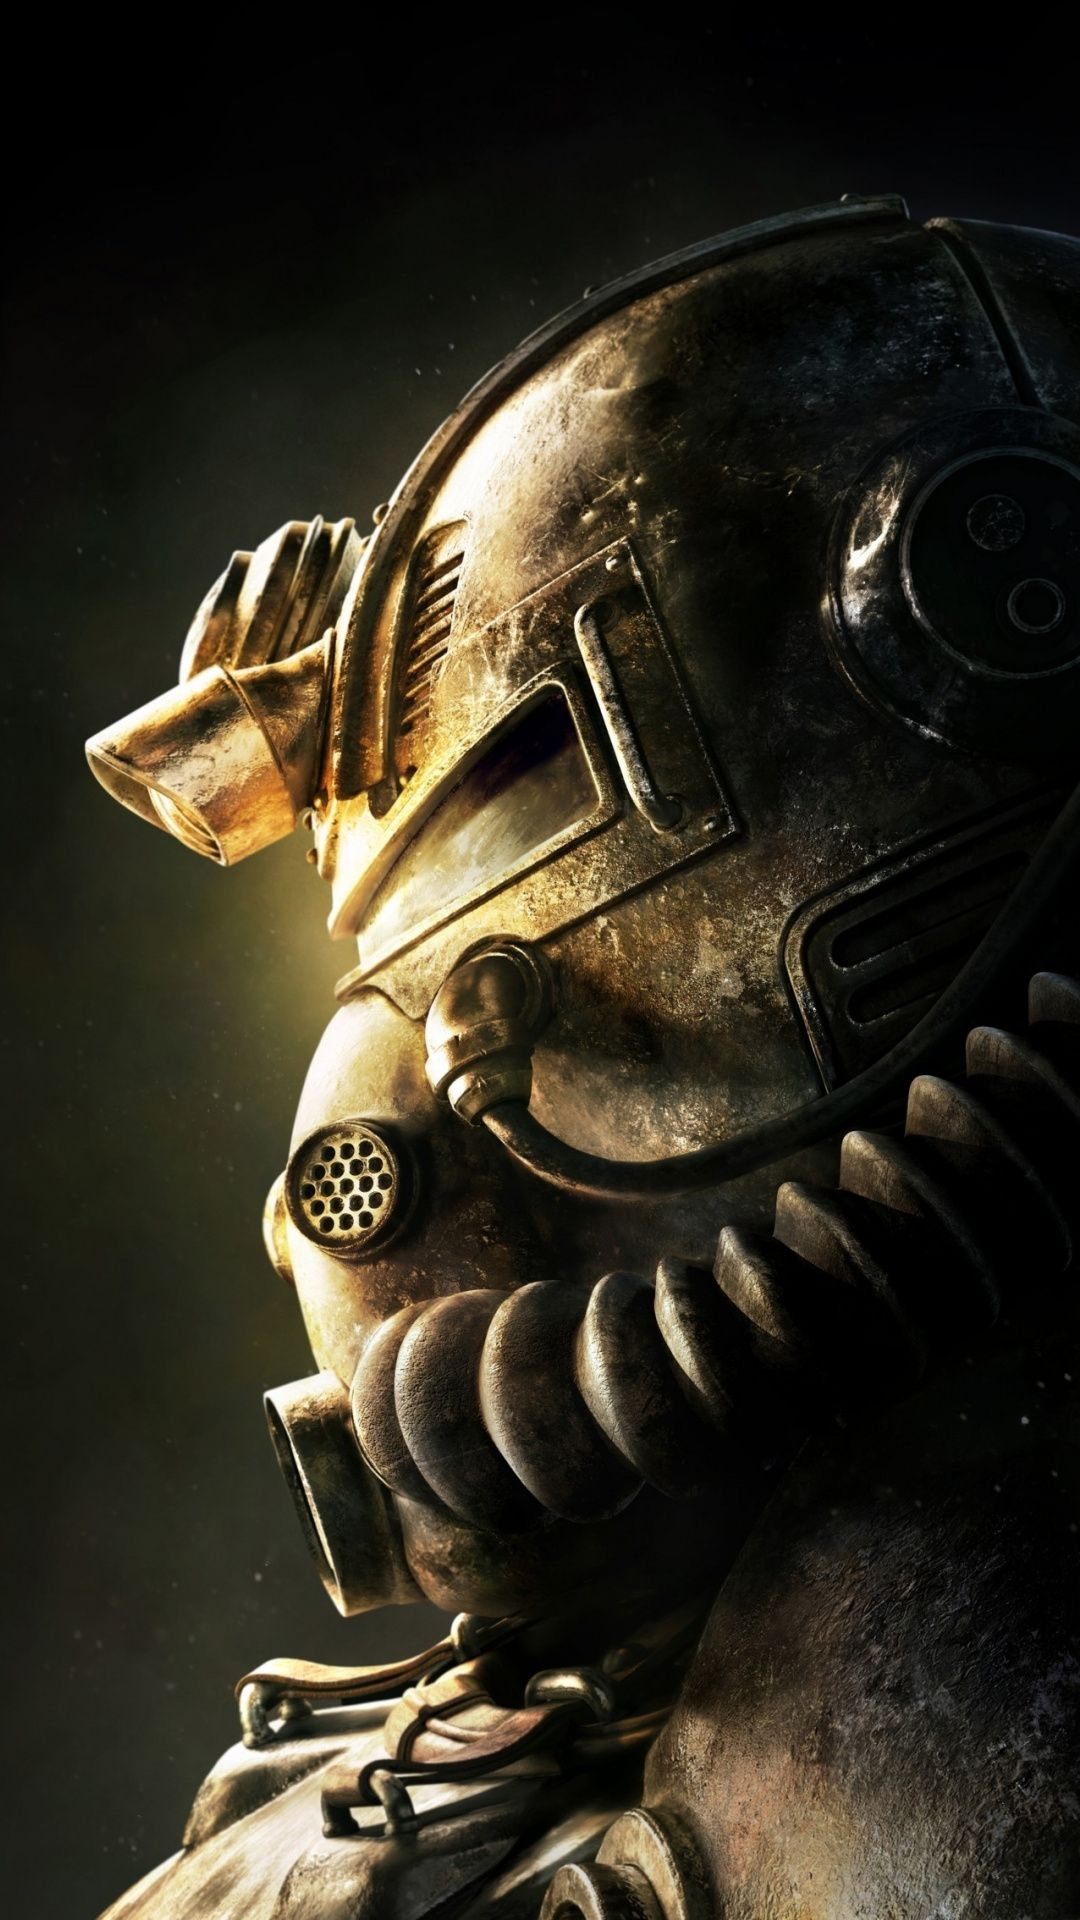 Video game, Fallout 76, iron suit, 1080x1920 wallpaper